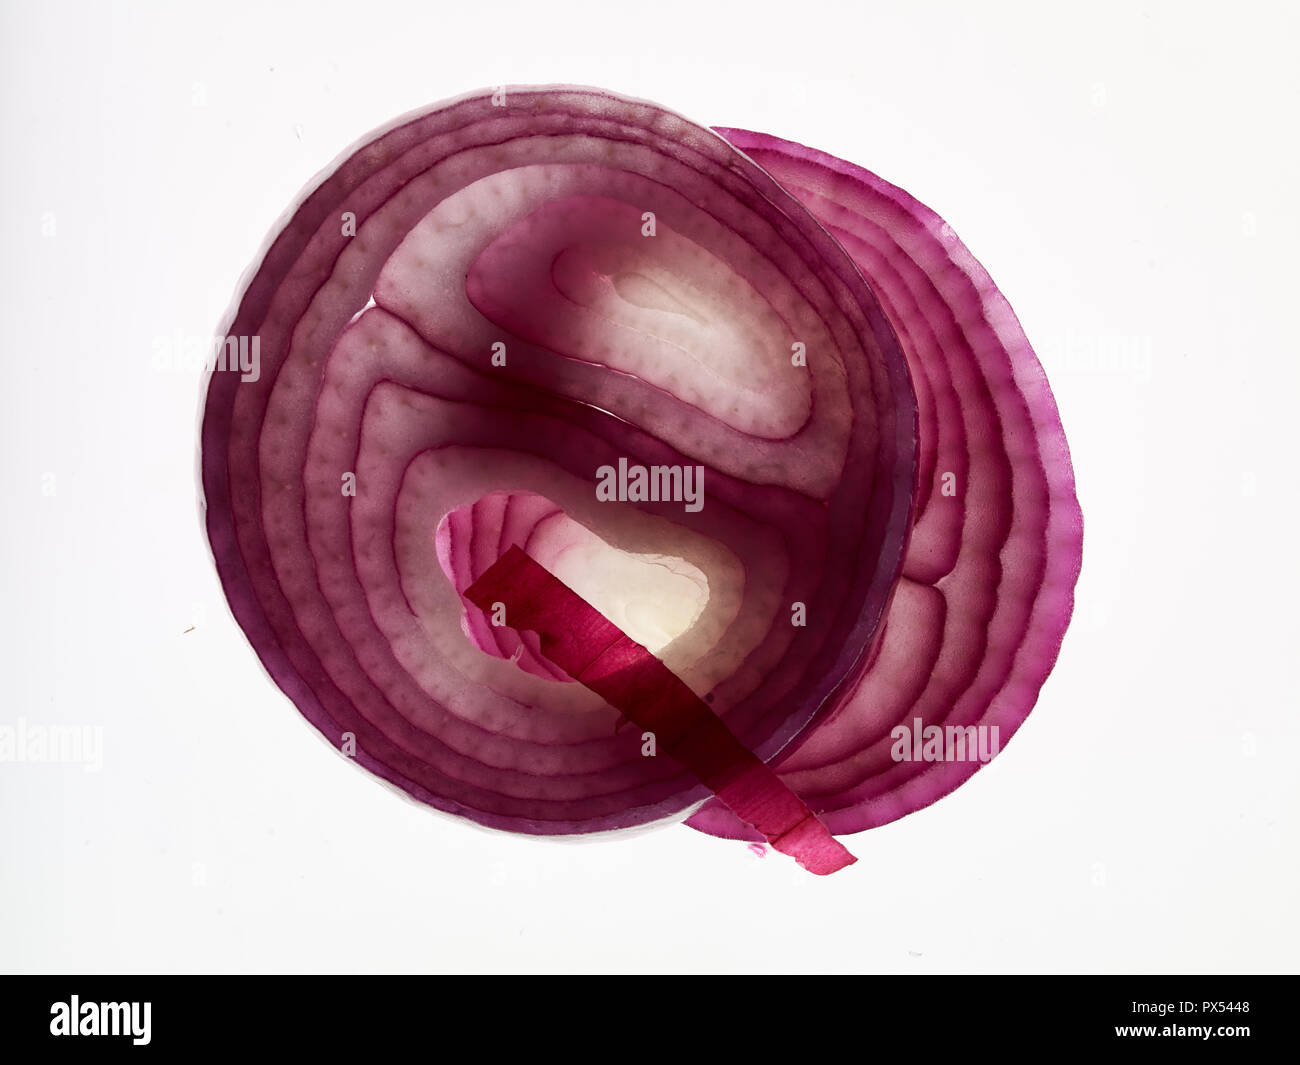 Abstract red onion slices close up food photograph - Stock Image